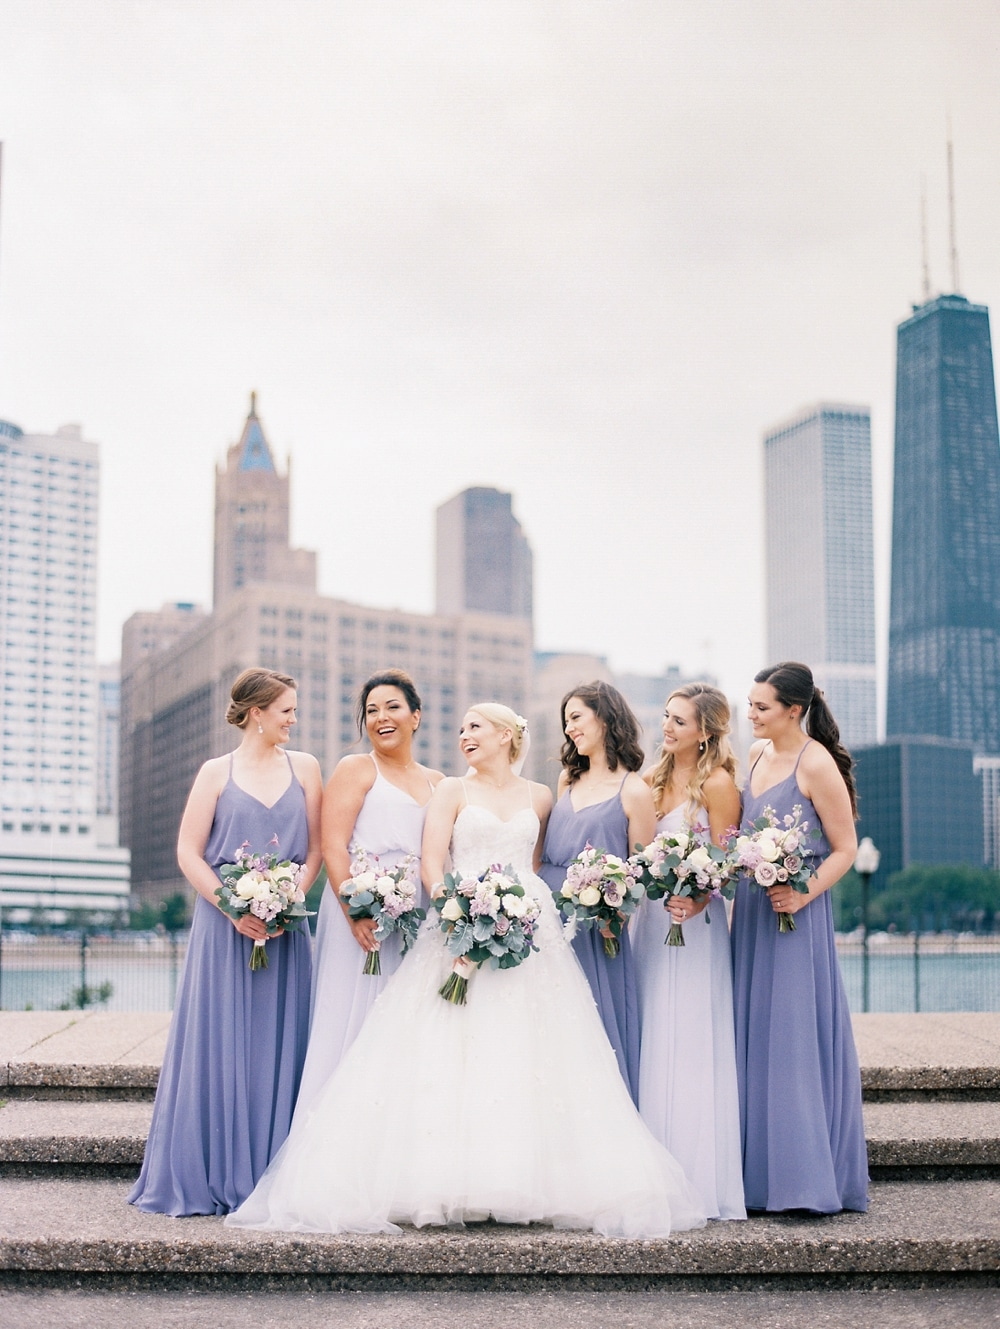 Kristin-La-Voie-Photography-salvatore's-chicago-wedding-photographer-63